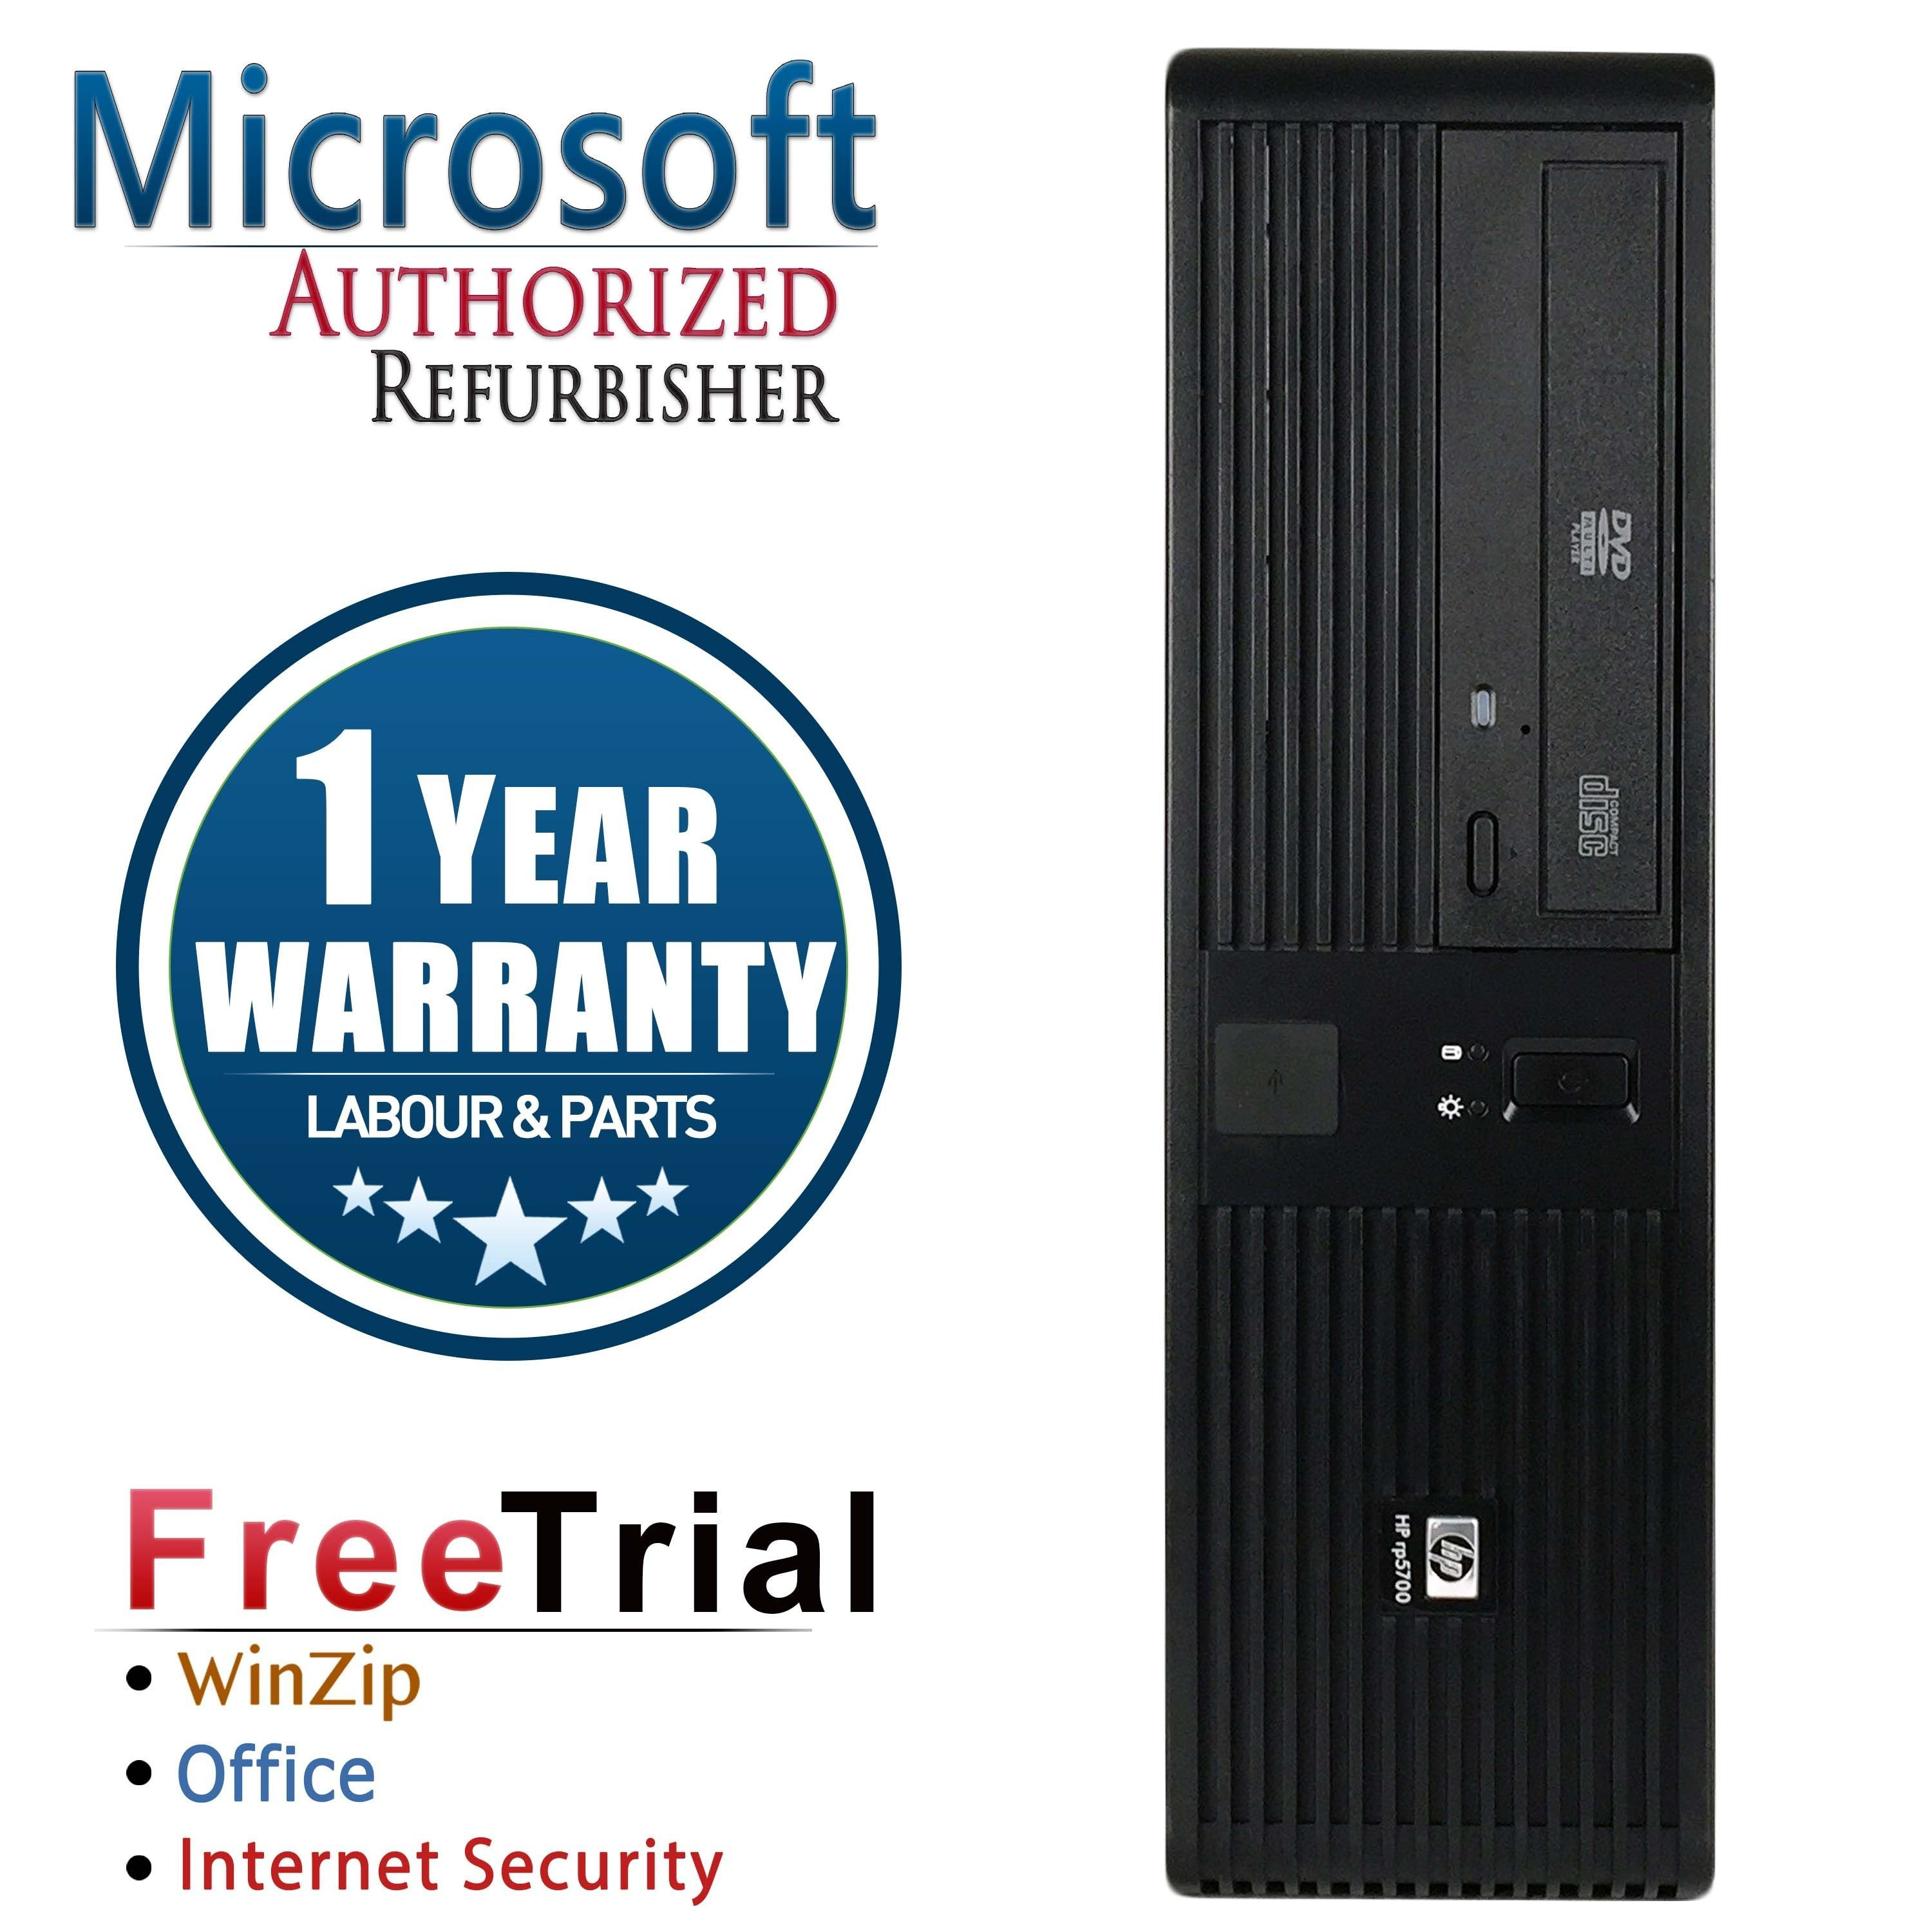 Refurbished HP RP5700 SFF Intel Core 2 Duo E6400 2.13G 4G DDR2 500G DVD Win 7 Home Premium 1 Year Warranty